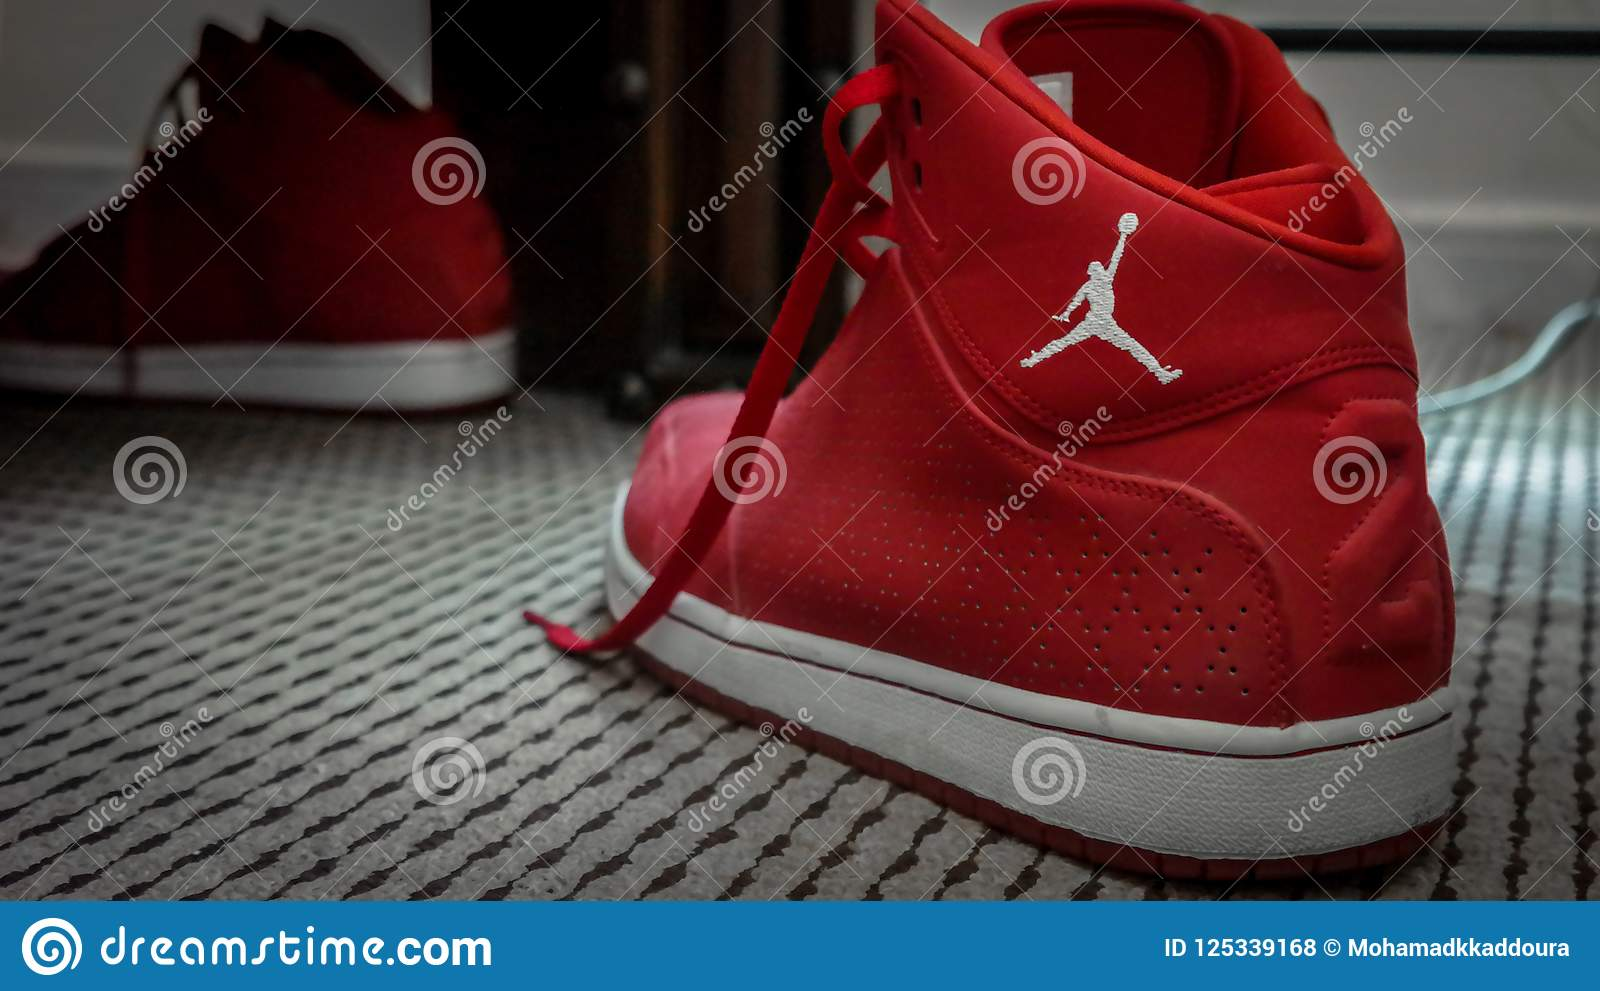 17aea9cb354b Red And White Nike MJ 23 Basketball Sneakers Editorial Stock Photo ...